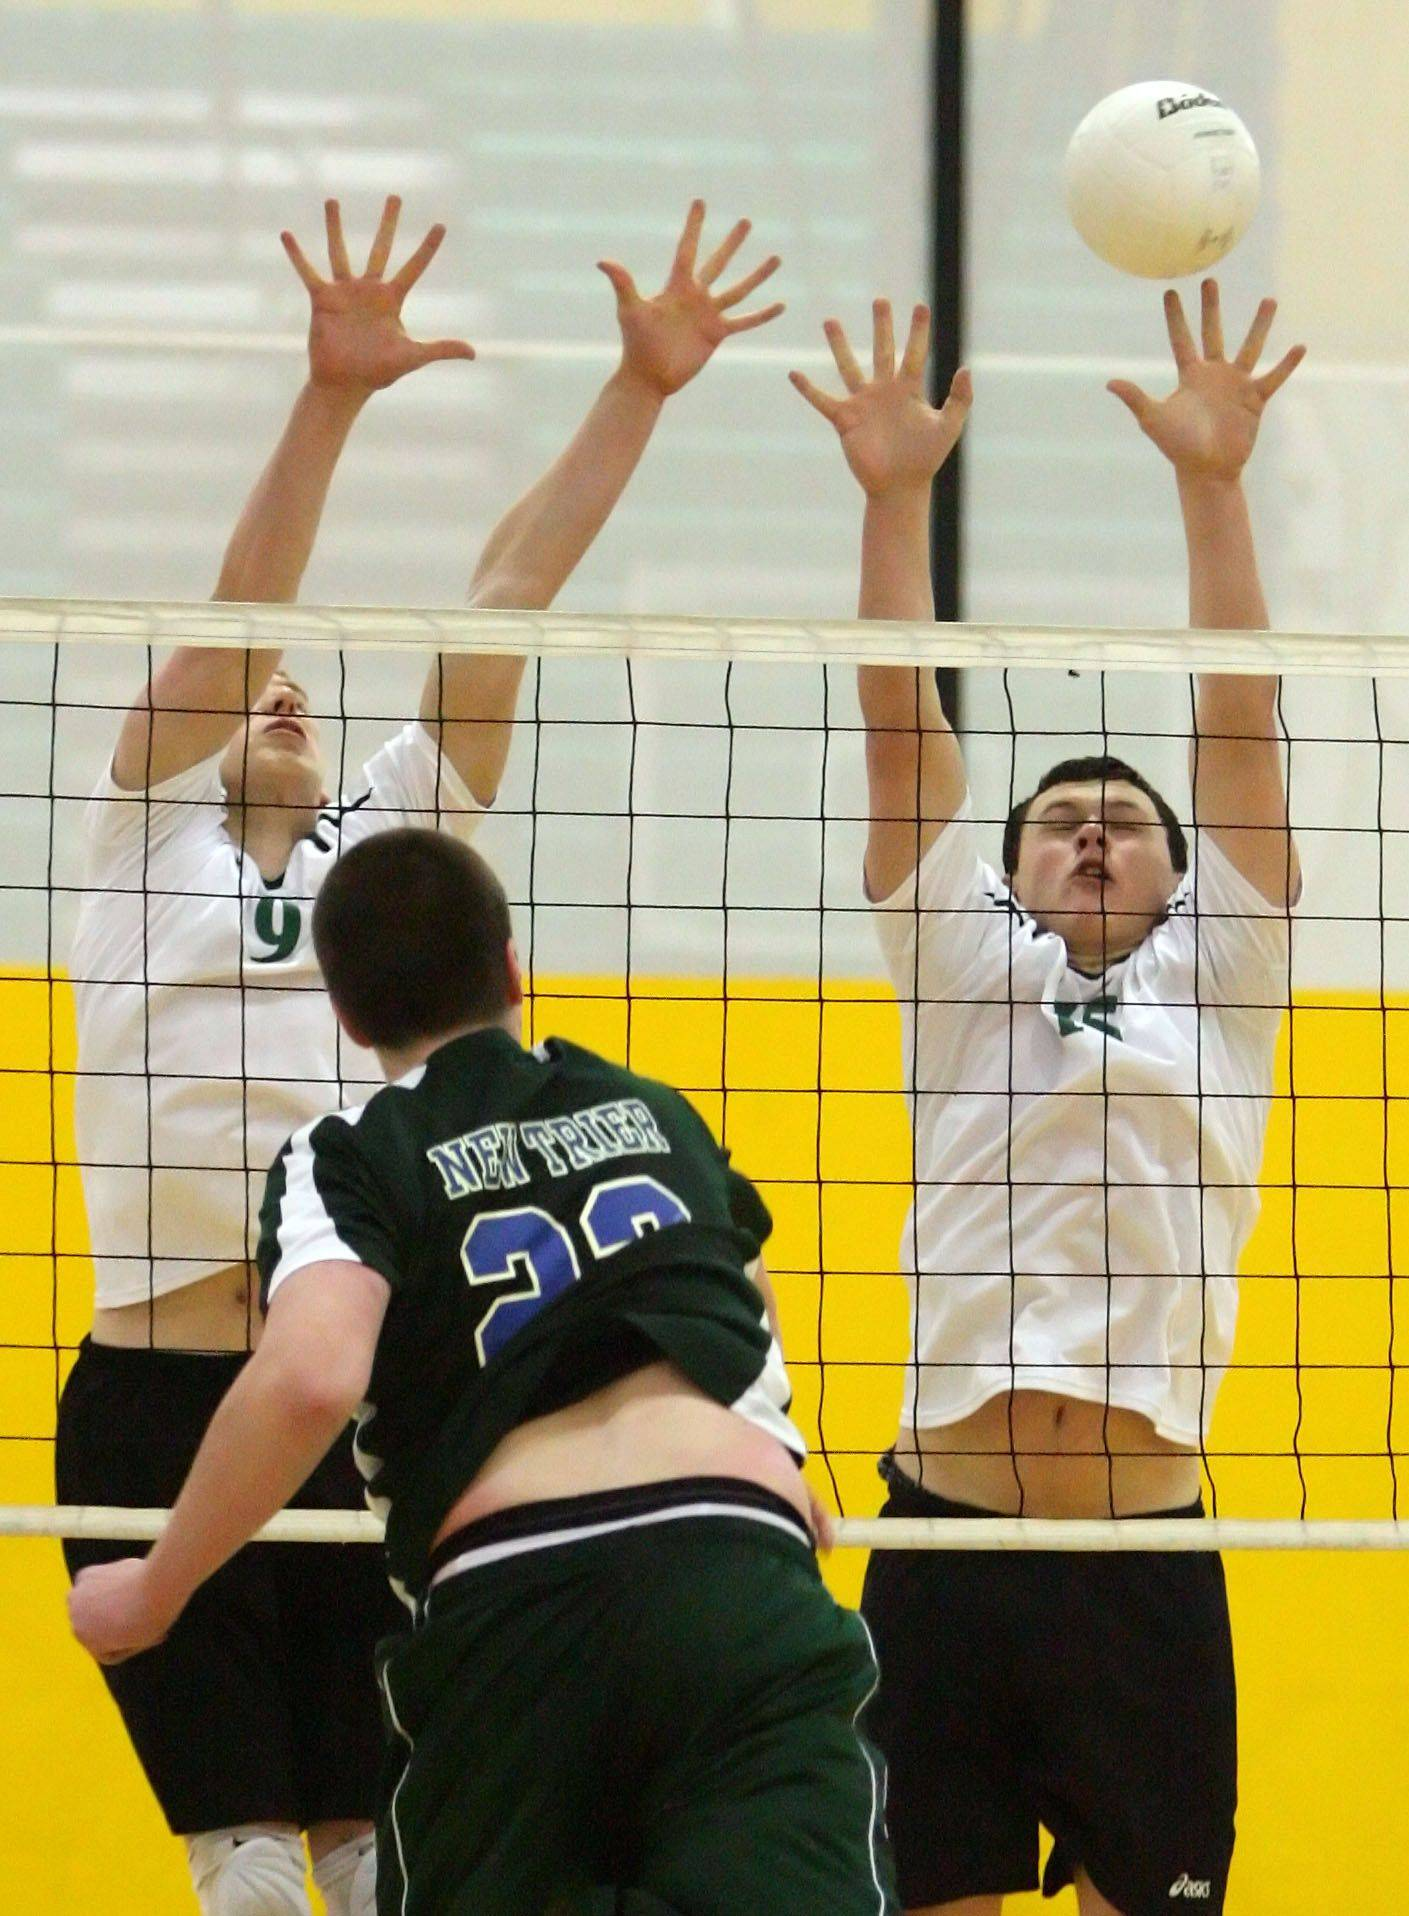 Stevenson's Jason Fleischman, left, and Mitch Robinson go up to block the spike of New Trier's Andy Gates during their game Tuesday night at Stevenson.